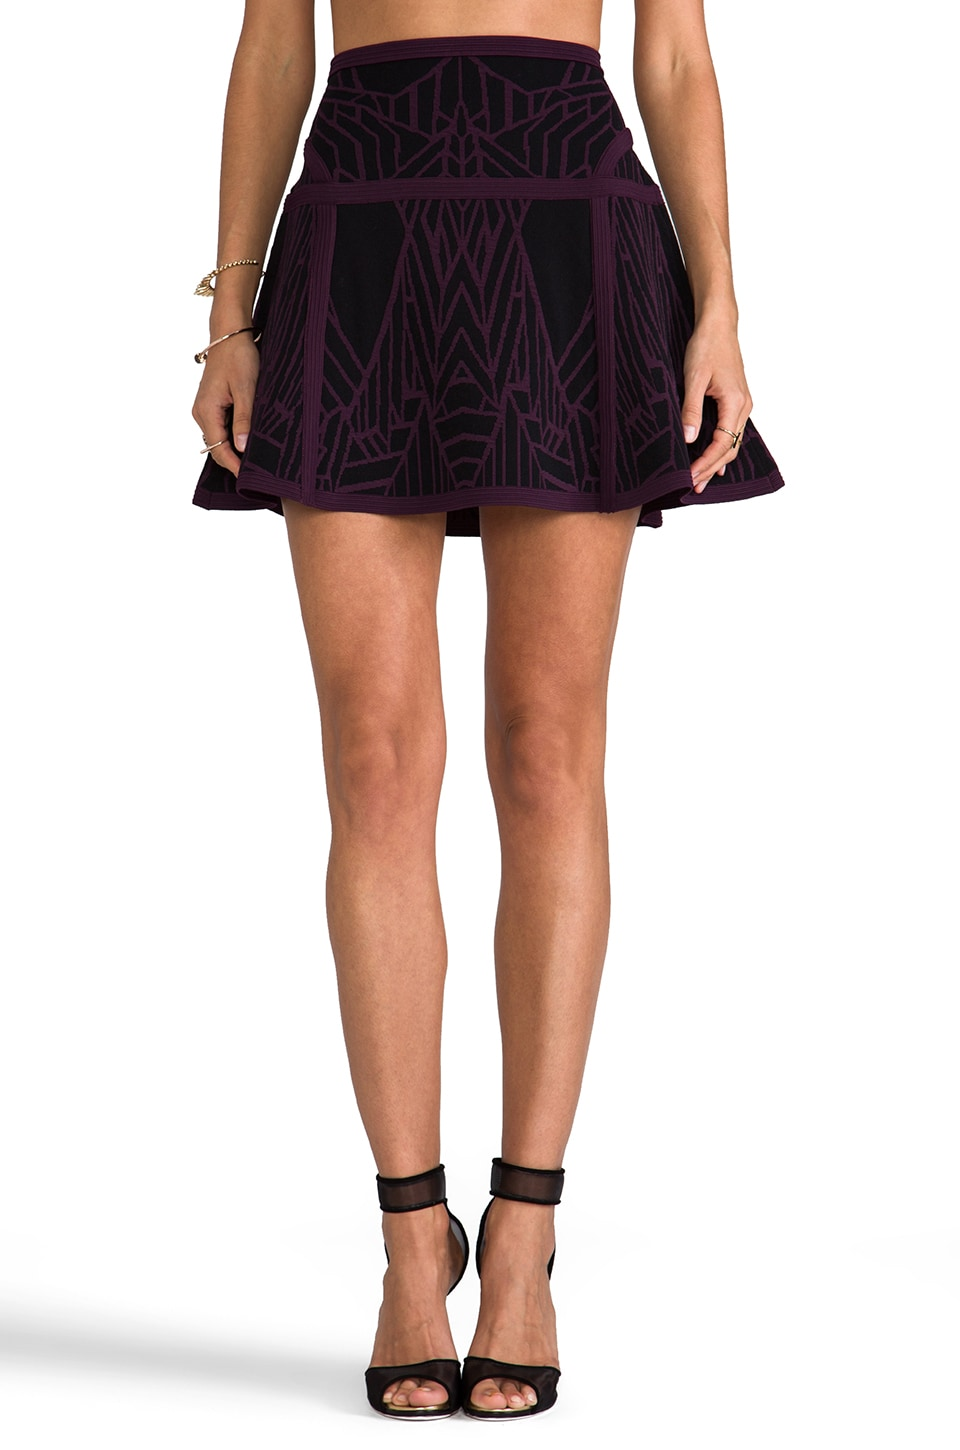 Diane von Furstenberg Flote Super Stretch Skirt in Black/Dark Plum